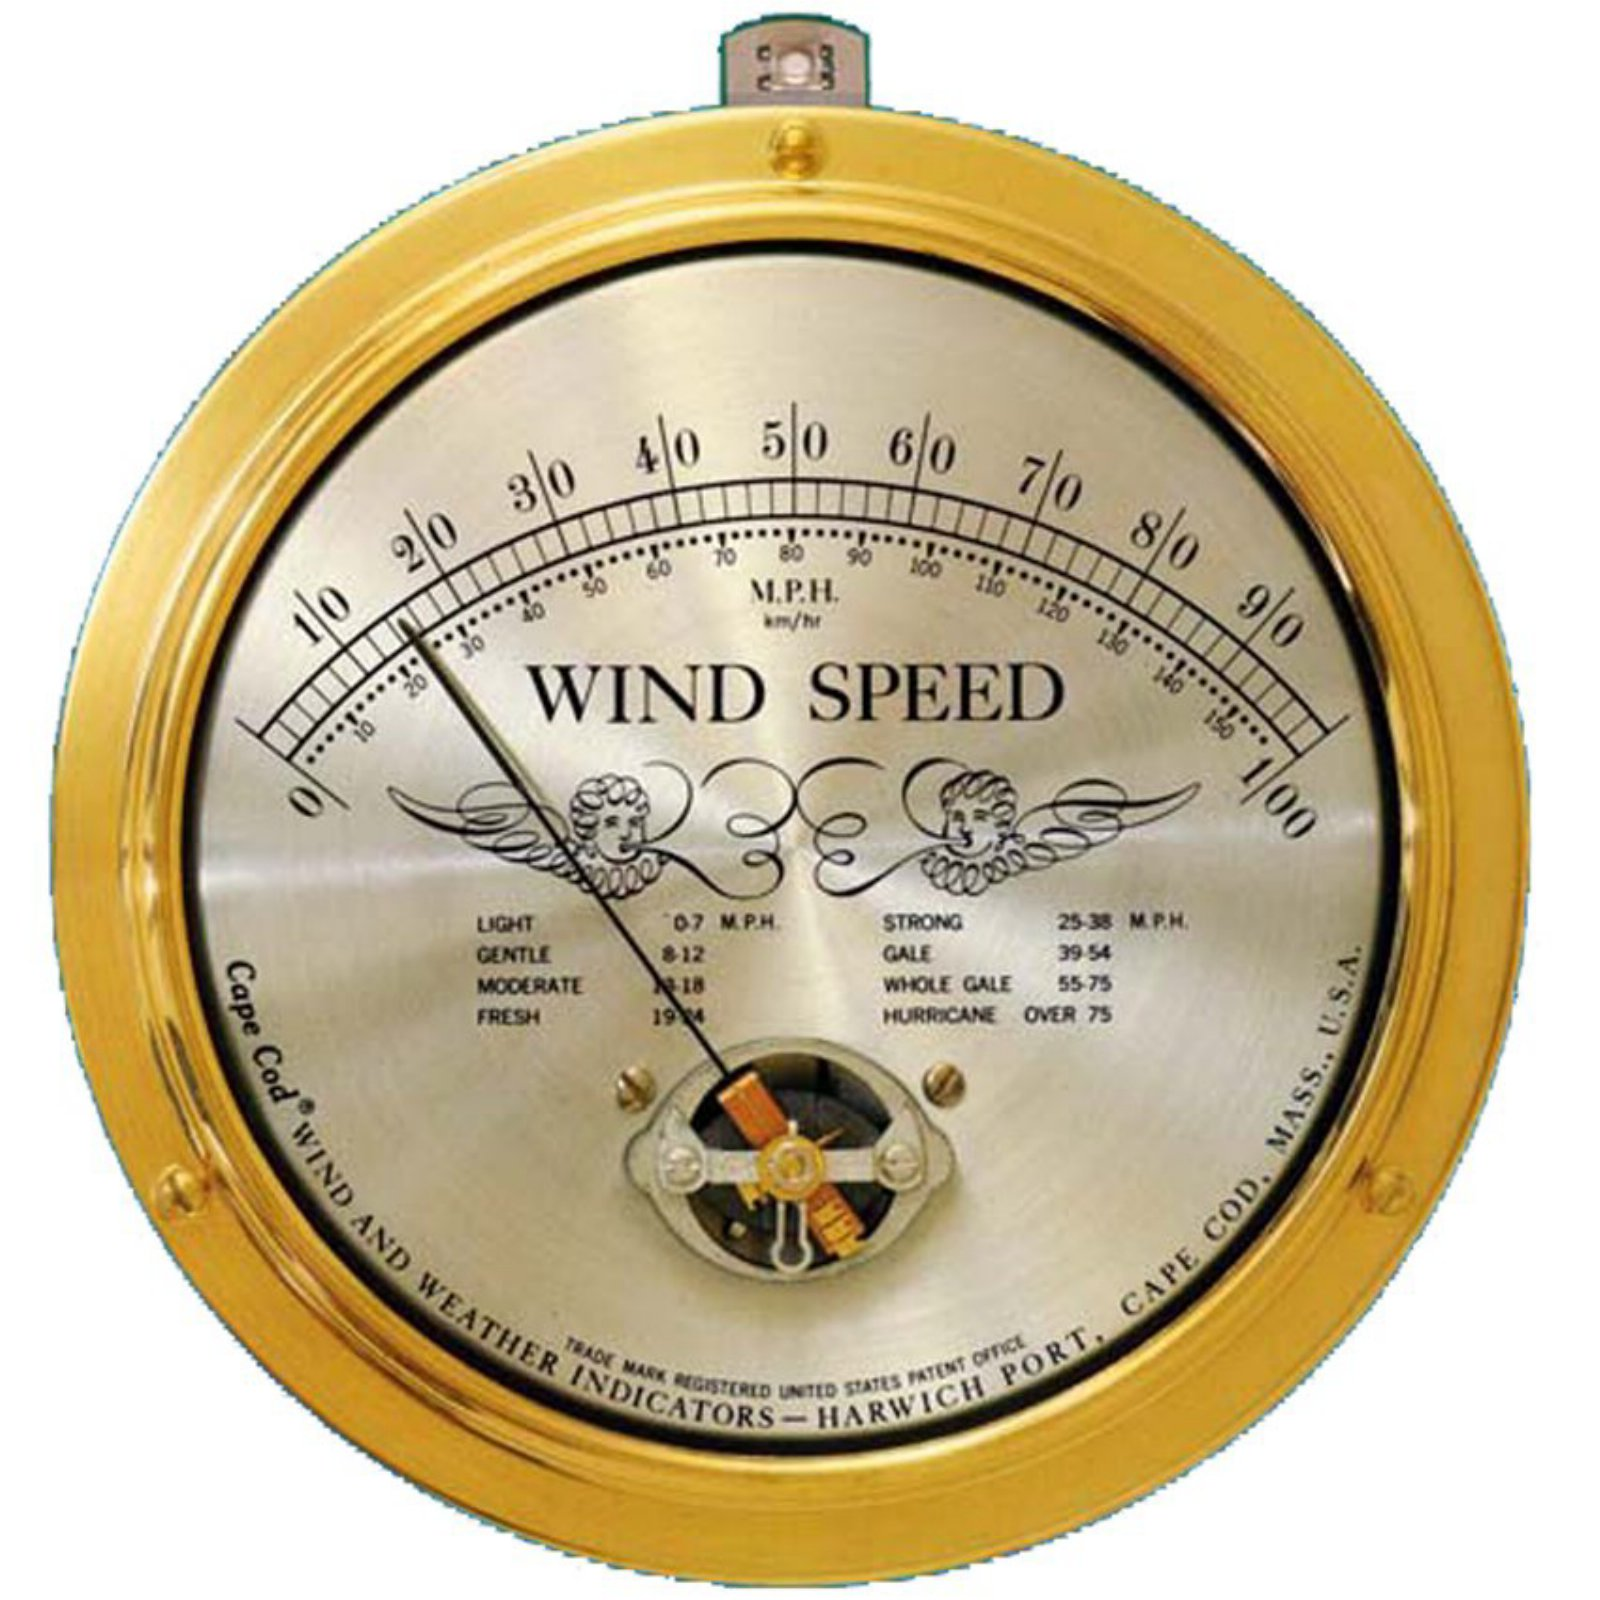 Cape Cod Wind Speed Indicator with Peak Gust Upgrade